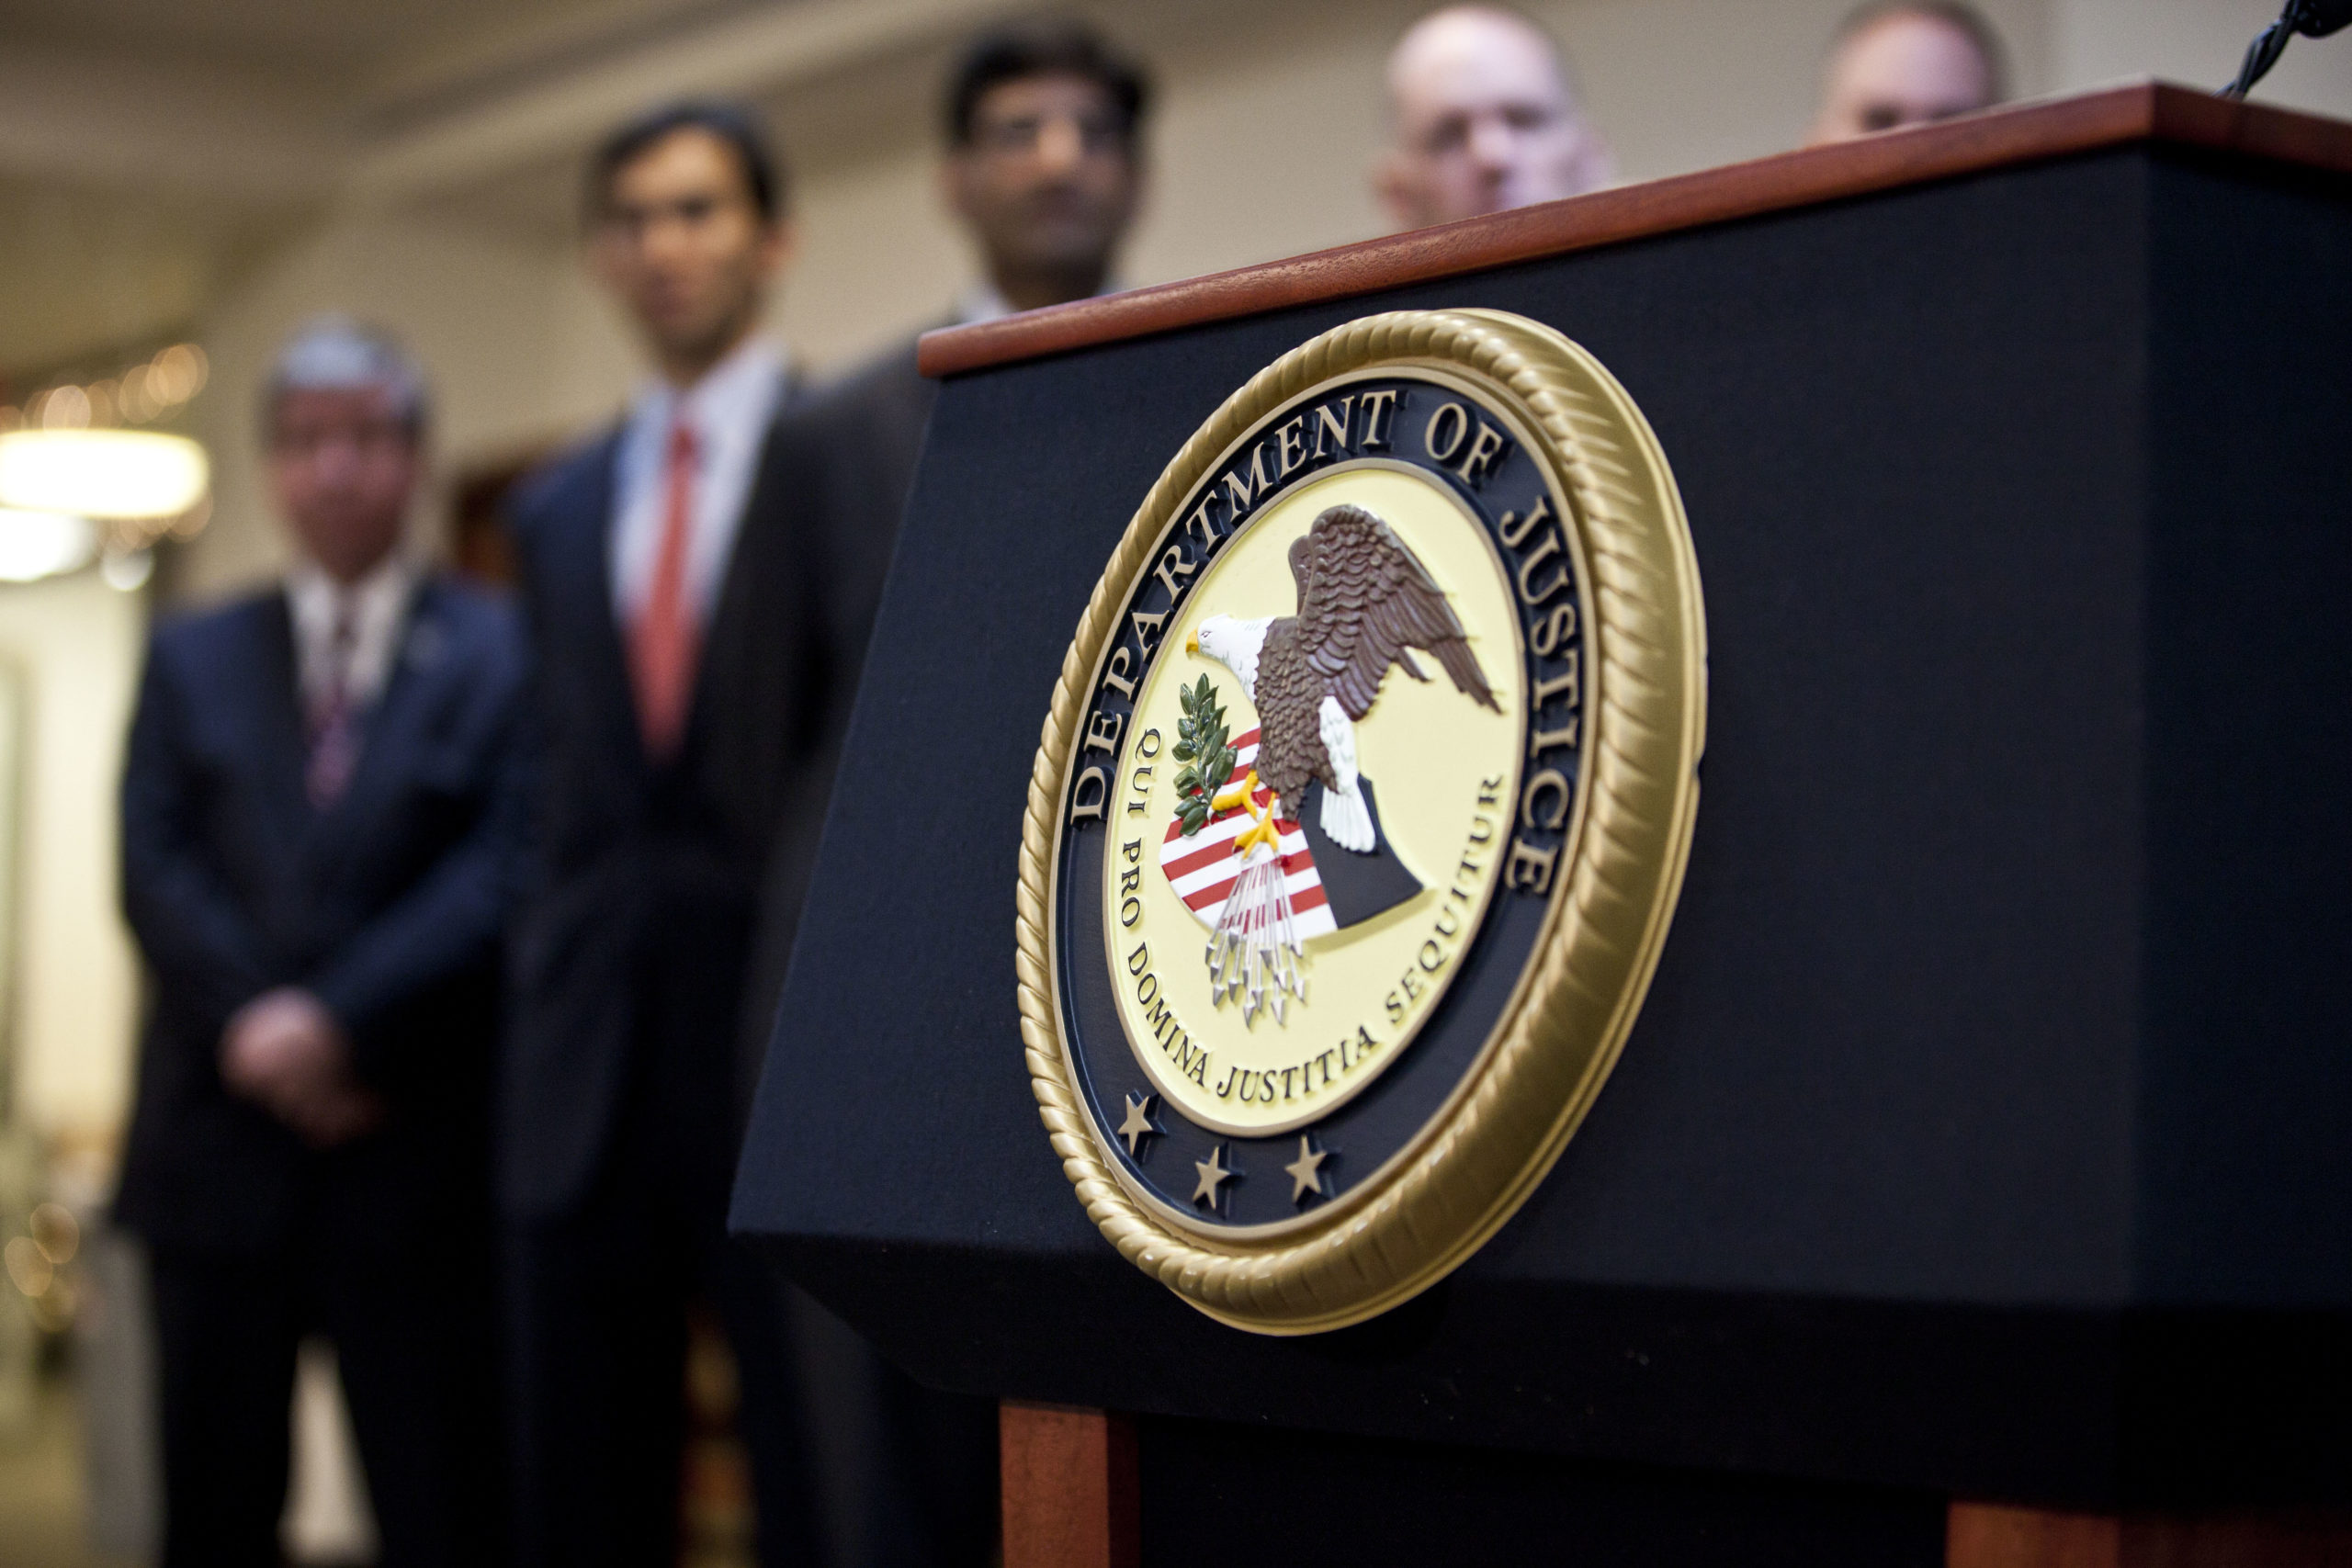 NEW YORK, NY - DECEMBER 11: A US Department of Justice seal is displayed on a podium during a news conference to announce money laundering charges against HSBC on December 11, 2012 in the Brooklyn borough of New York City. HSBC Holdings plc and HSBC USA NA have agreed to pay $1.92 billion and enter into a deferred prosecution agreement with the U.S. Department of Justice in regards to charges involving money laundering with Mexican drug cartels. (Photo by Ramin Talaie/Getty Images)